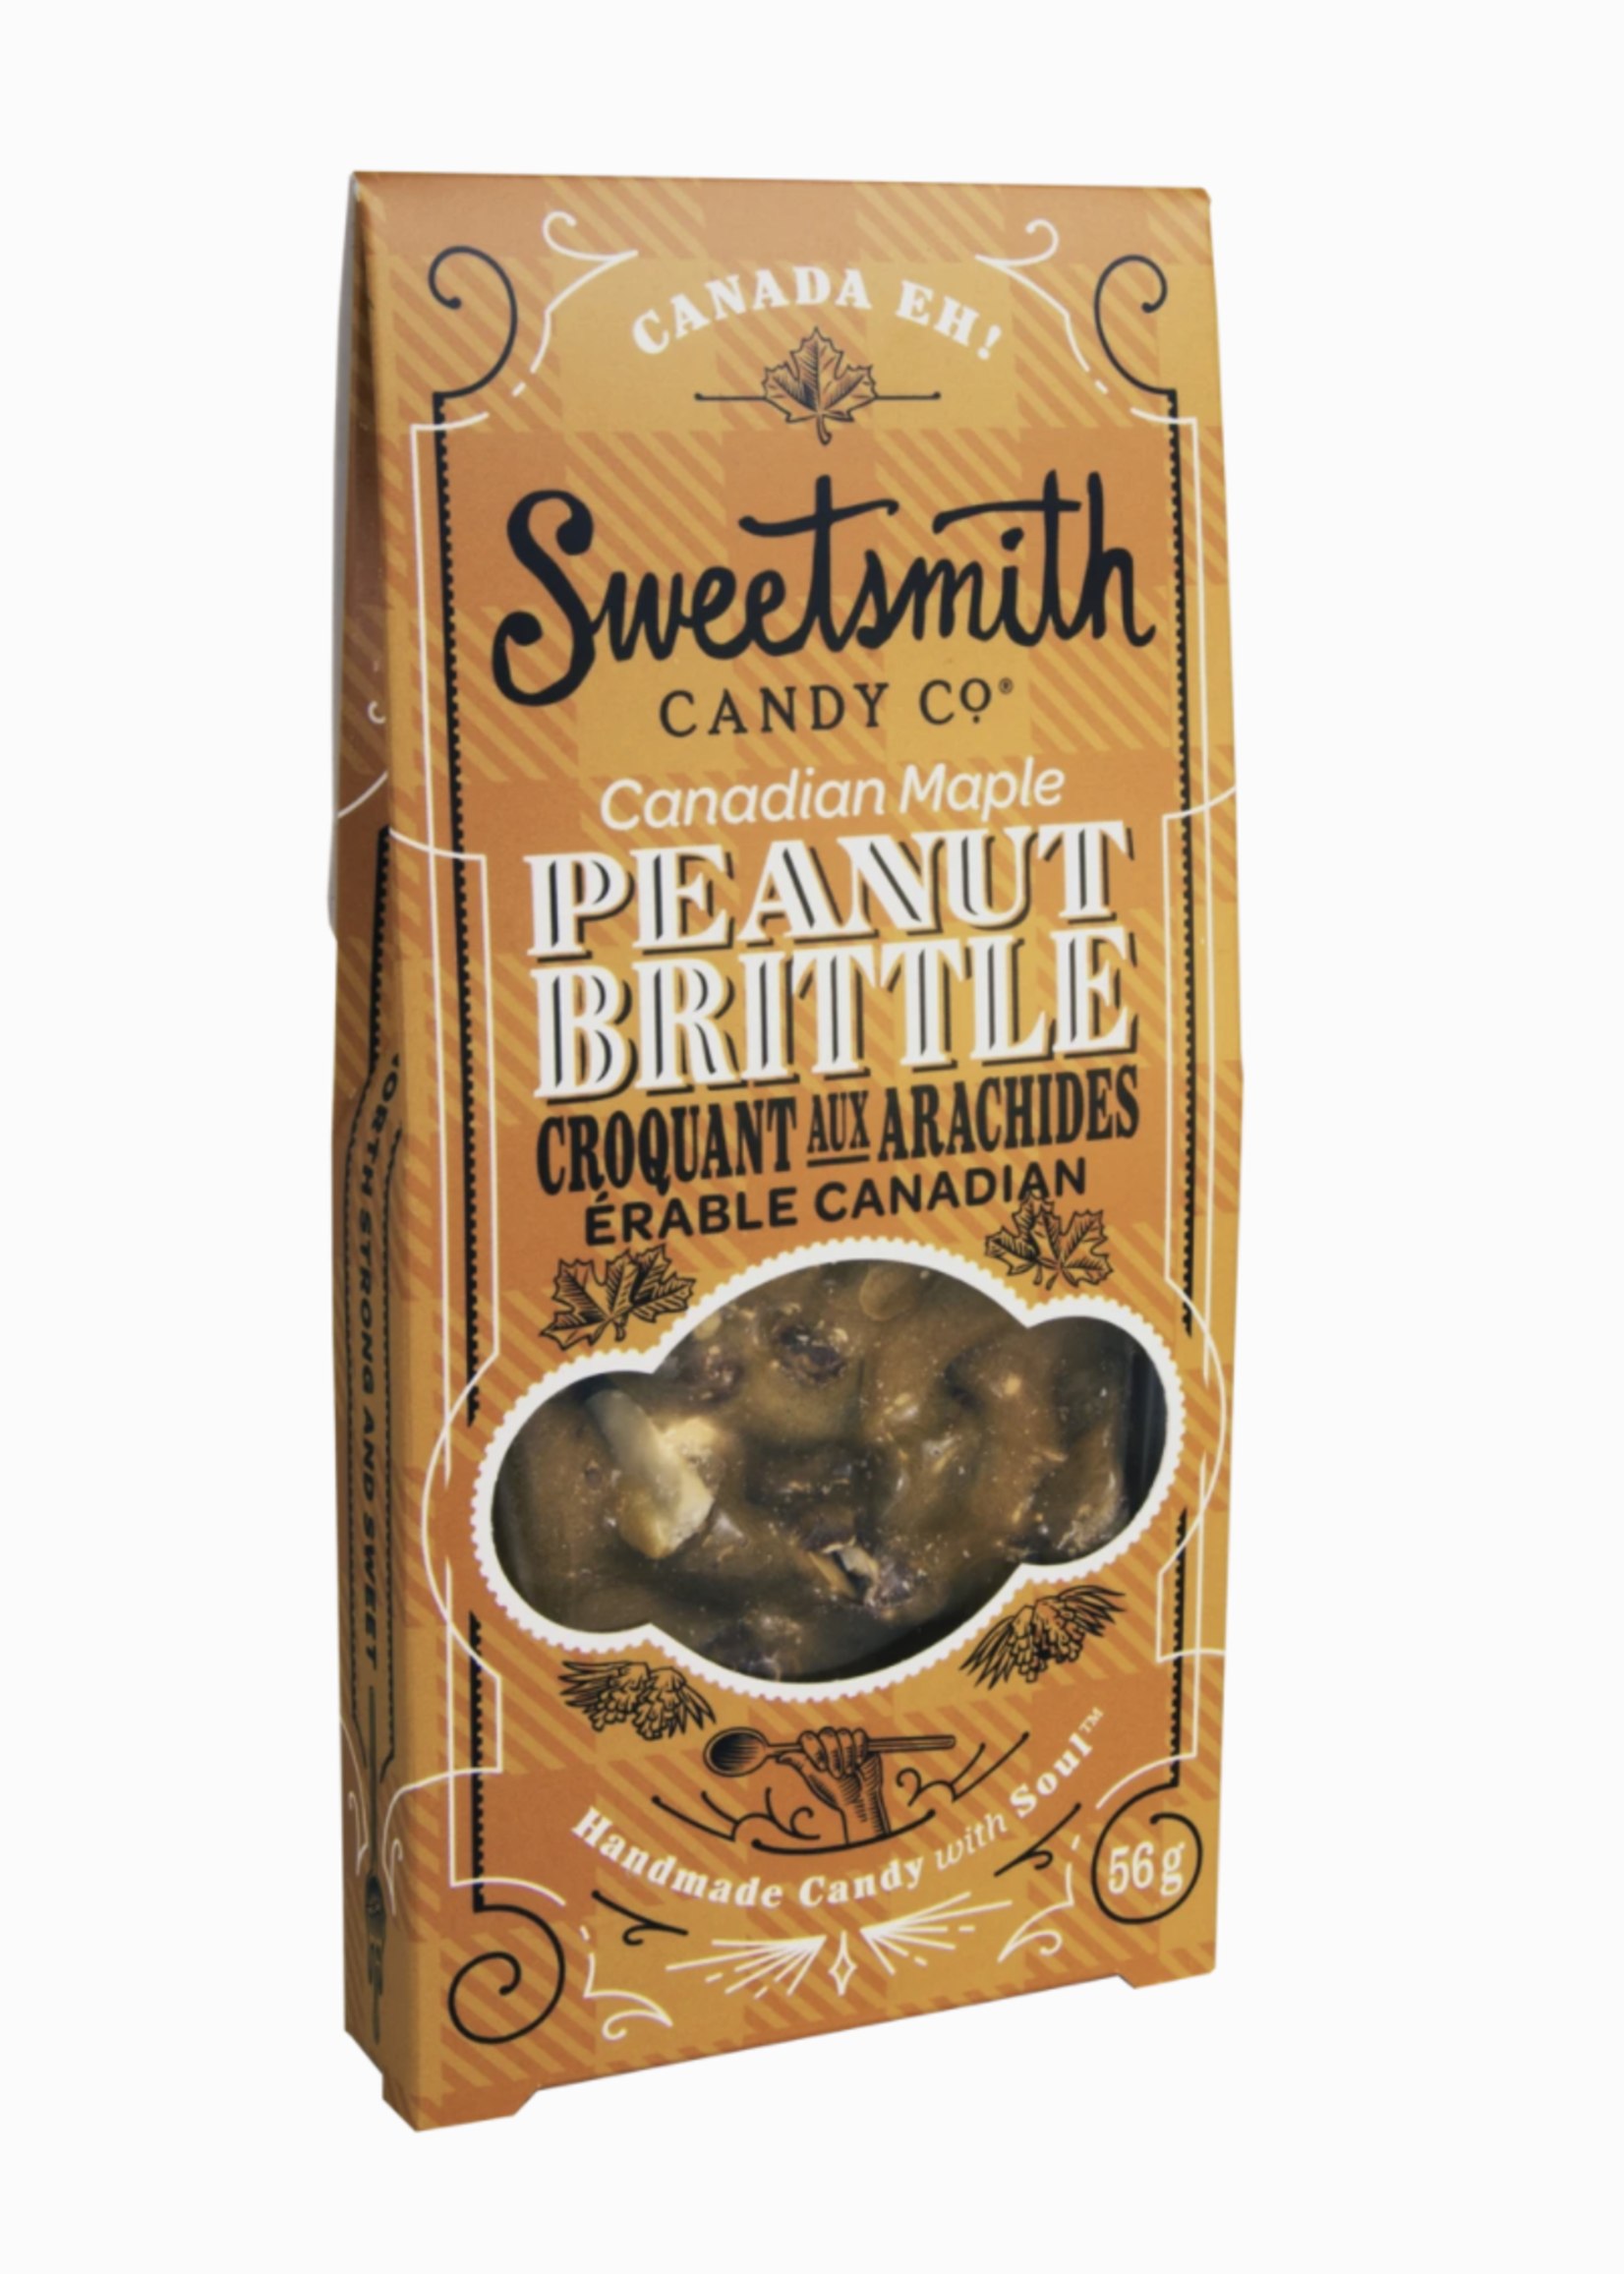 Sweetsmith Candy Co. Maple Peanut Brittle